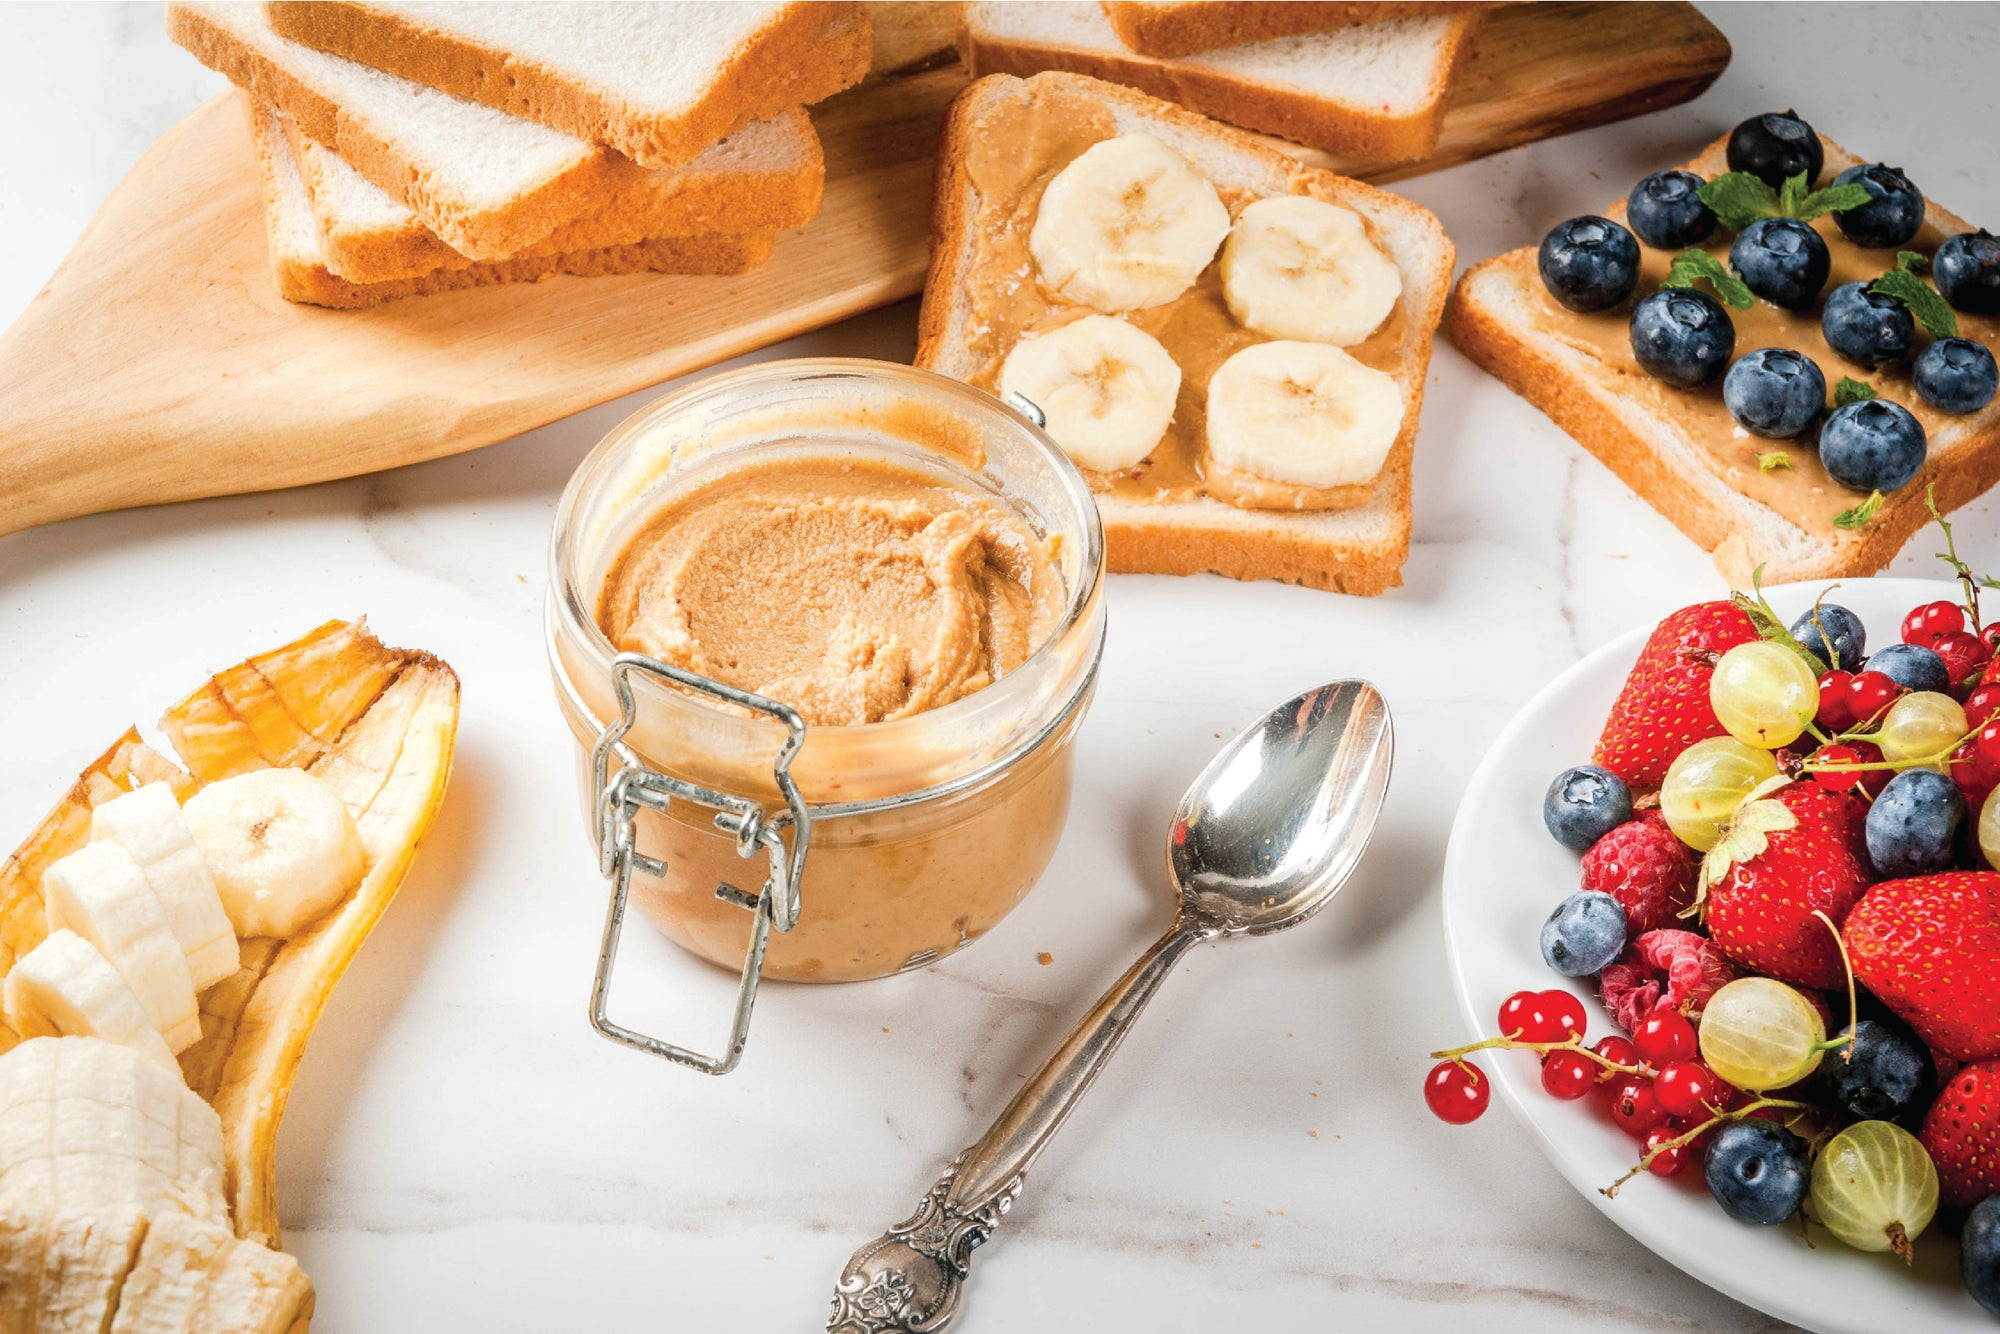 Banana peanut butter spread recipe